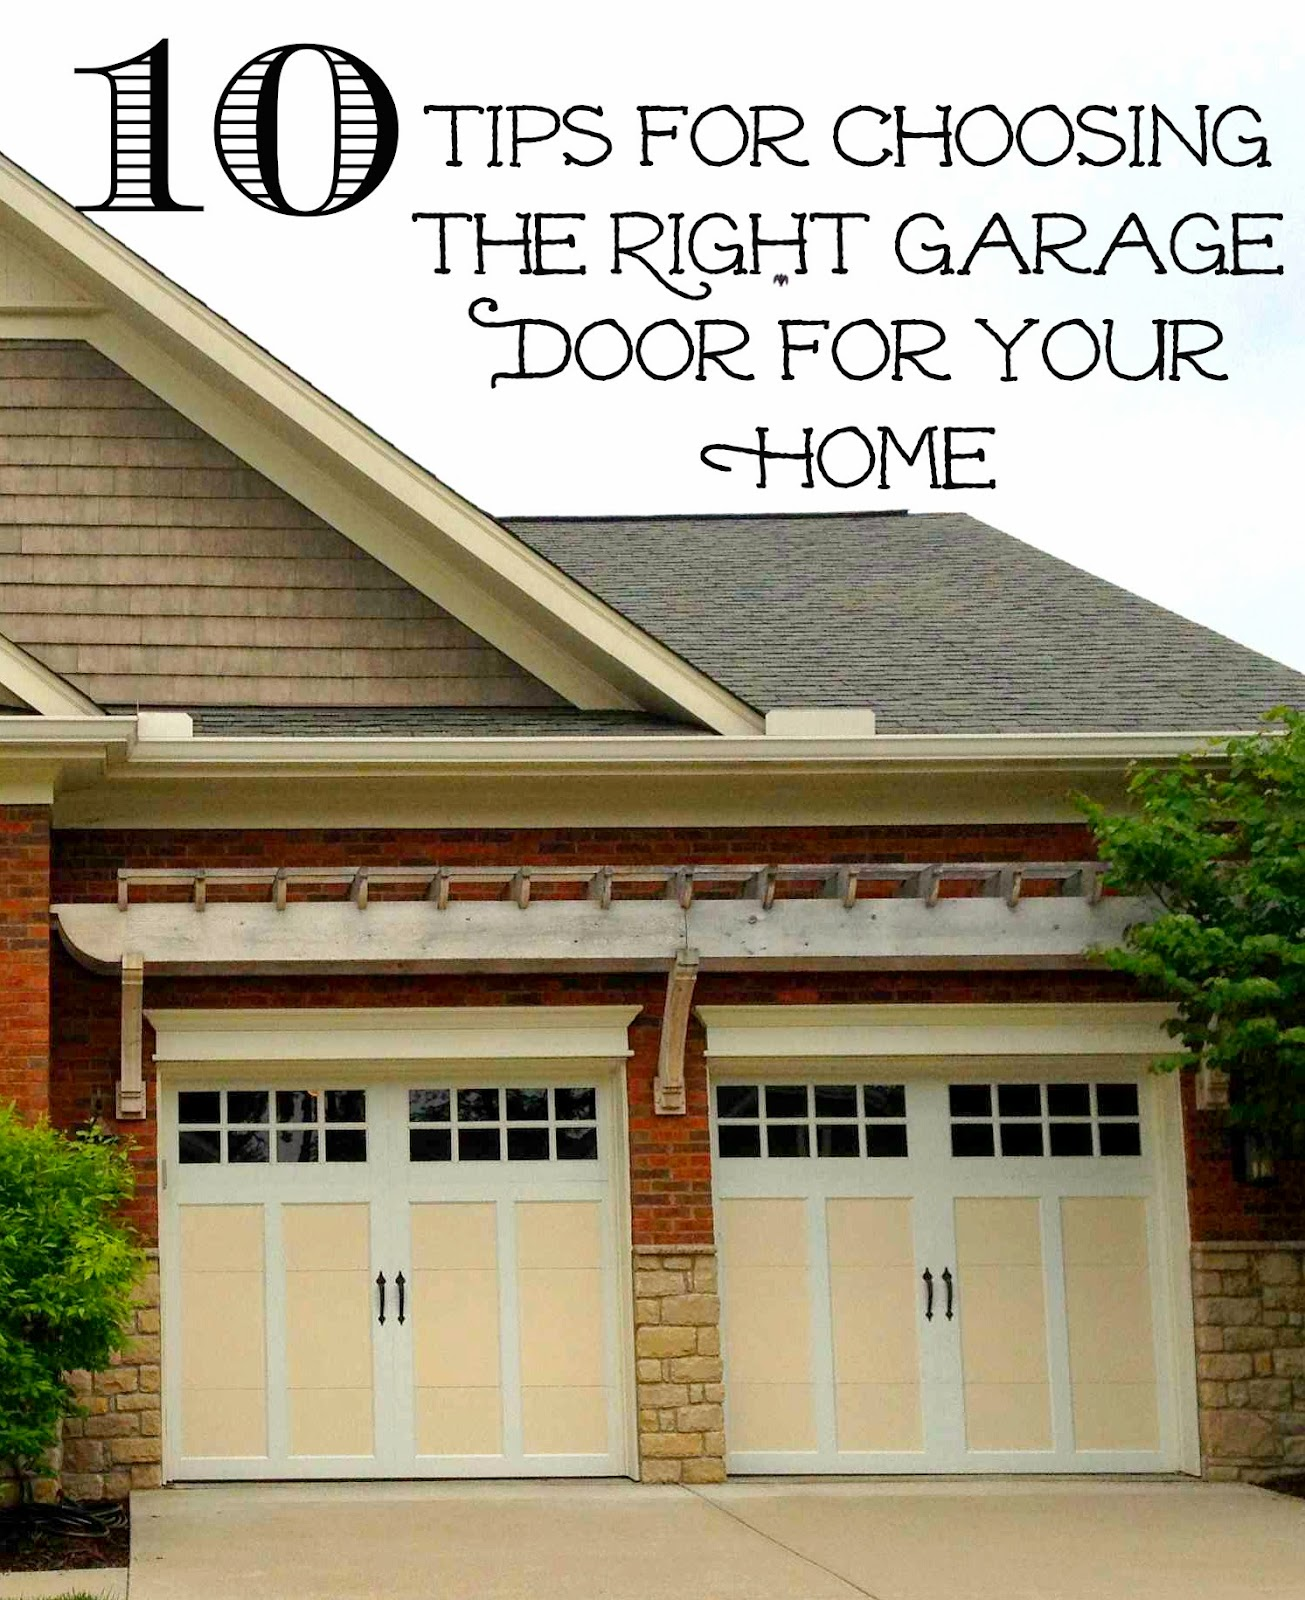 Charming Garage Door Replacement: 10 Tips For Making The Right Choice